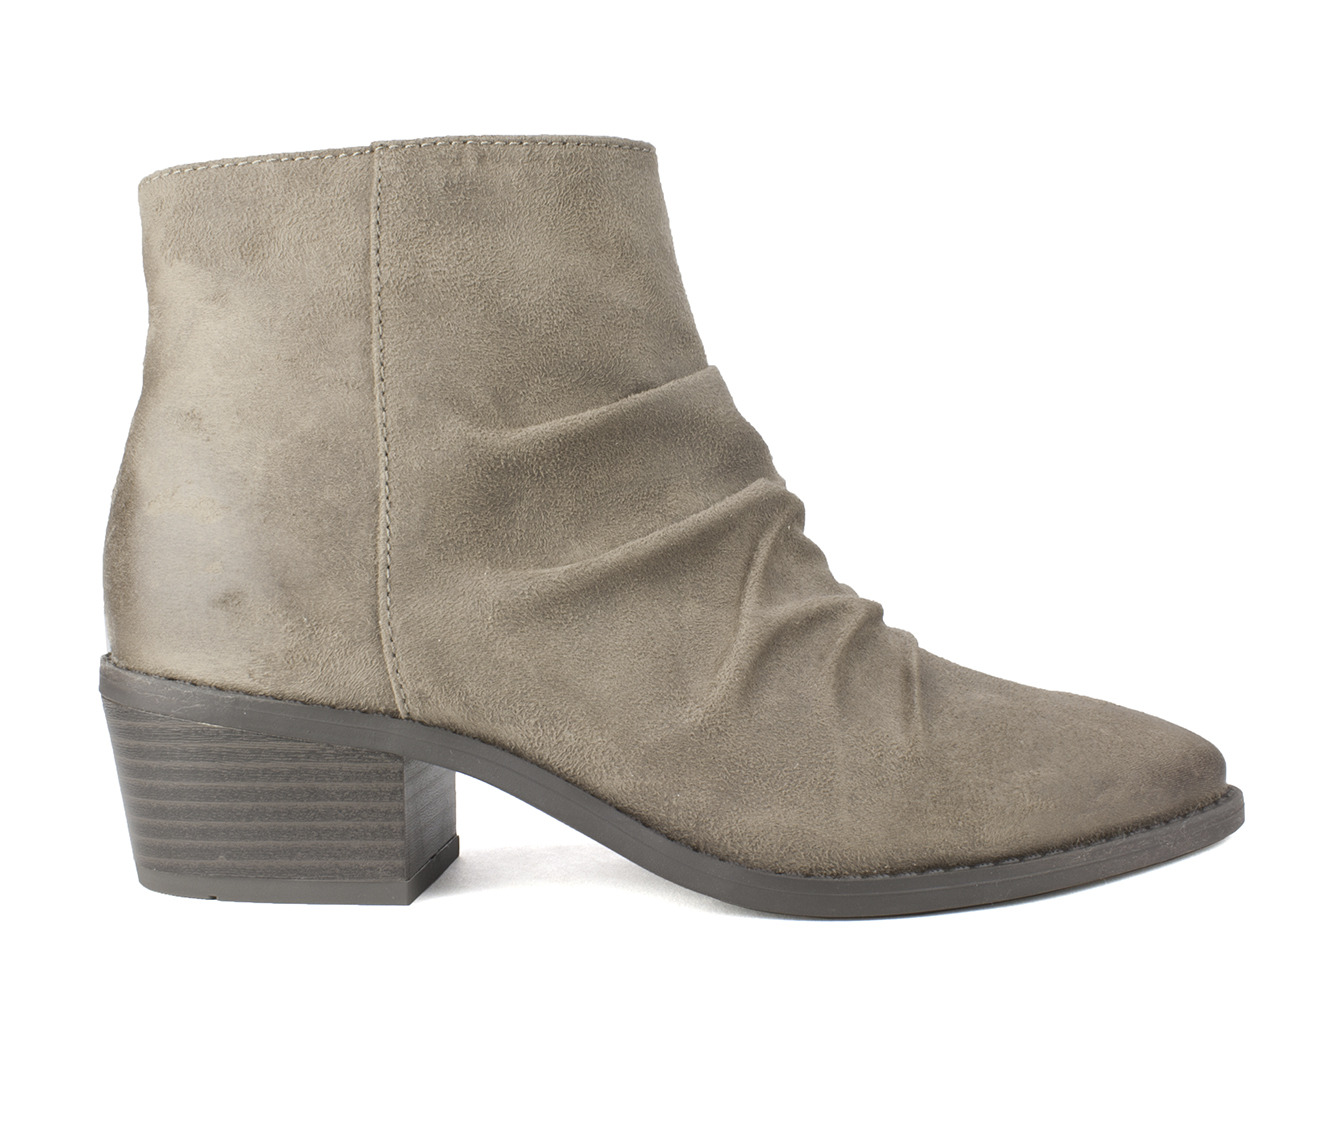 White Mountain Carriden Women's Boots (Beige - Suede)